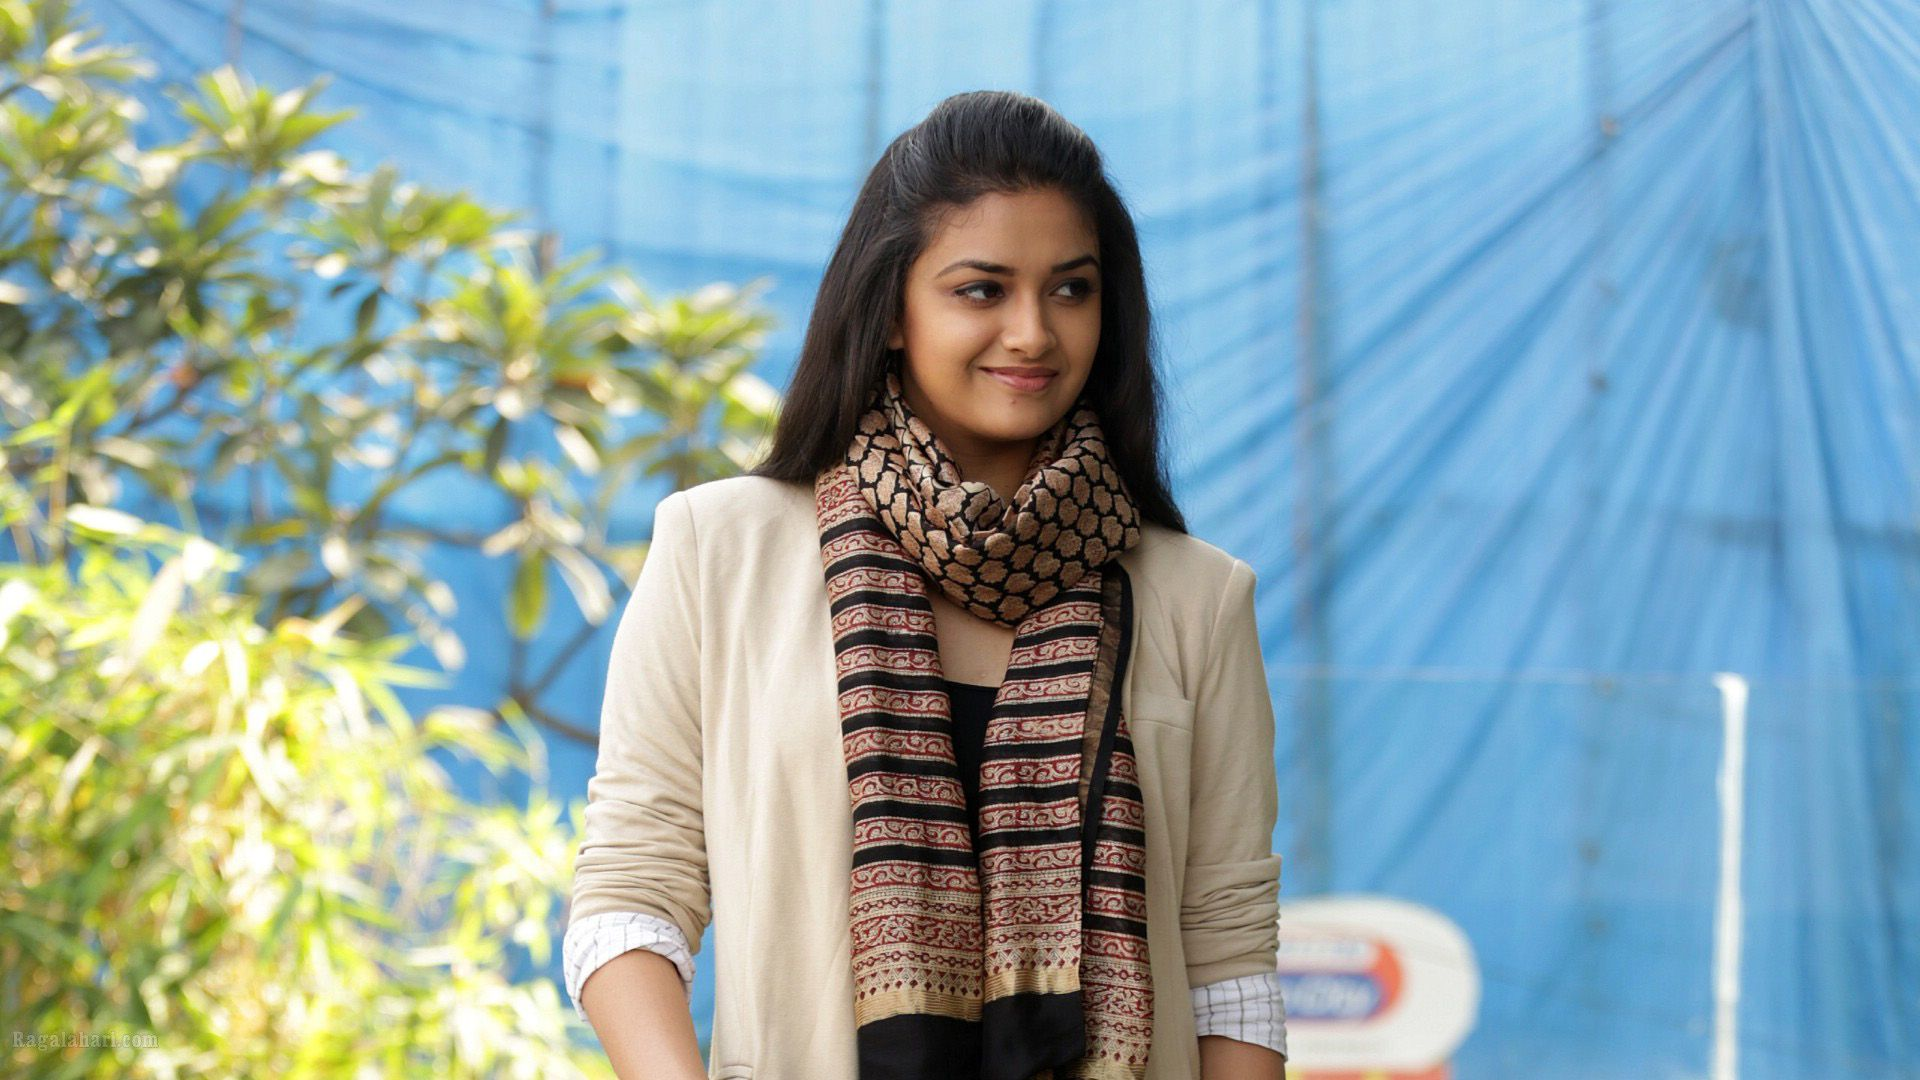 Keerthi Suresh, Free Wallpaper and Background